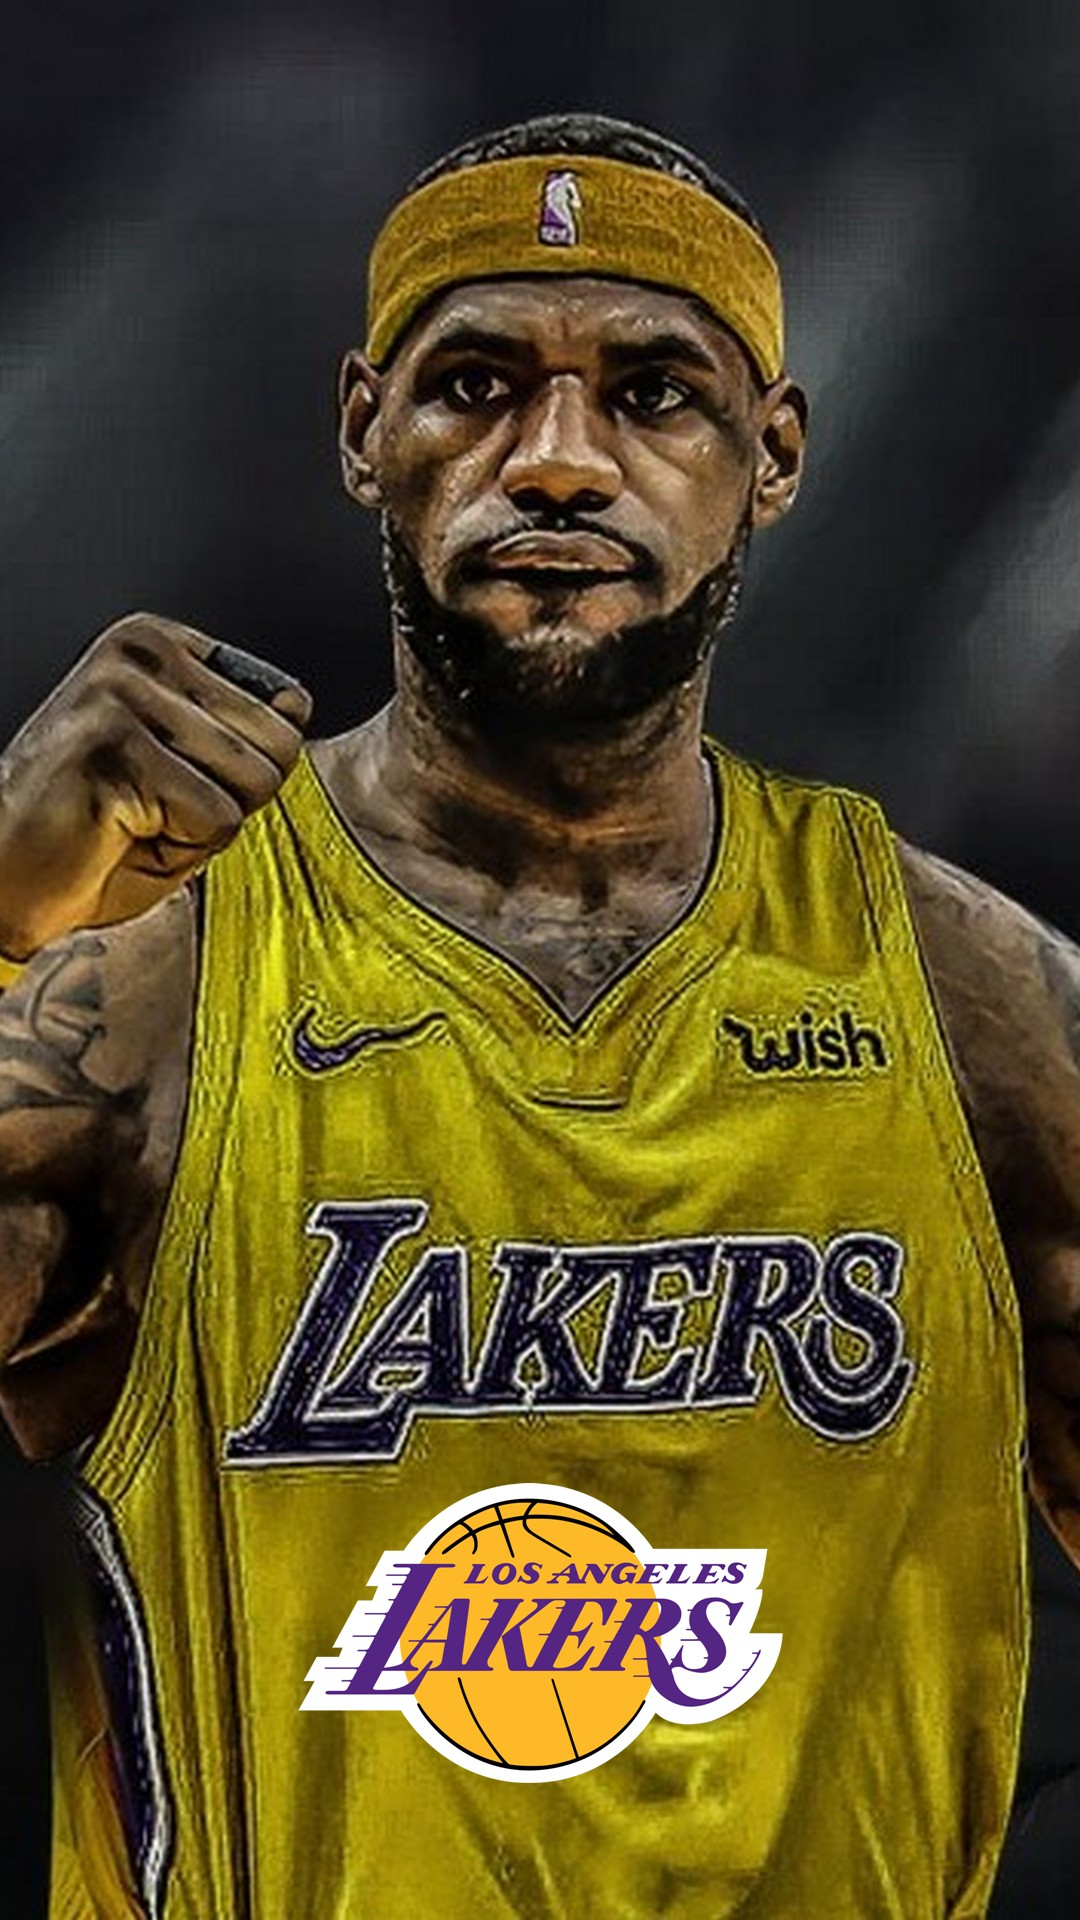 LeBron James Lakers HD Wallpaper For iPhone 2020 Basketball 1080x1920